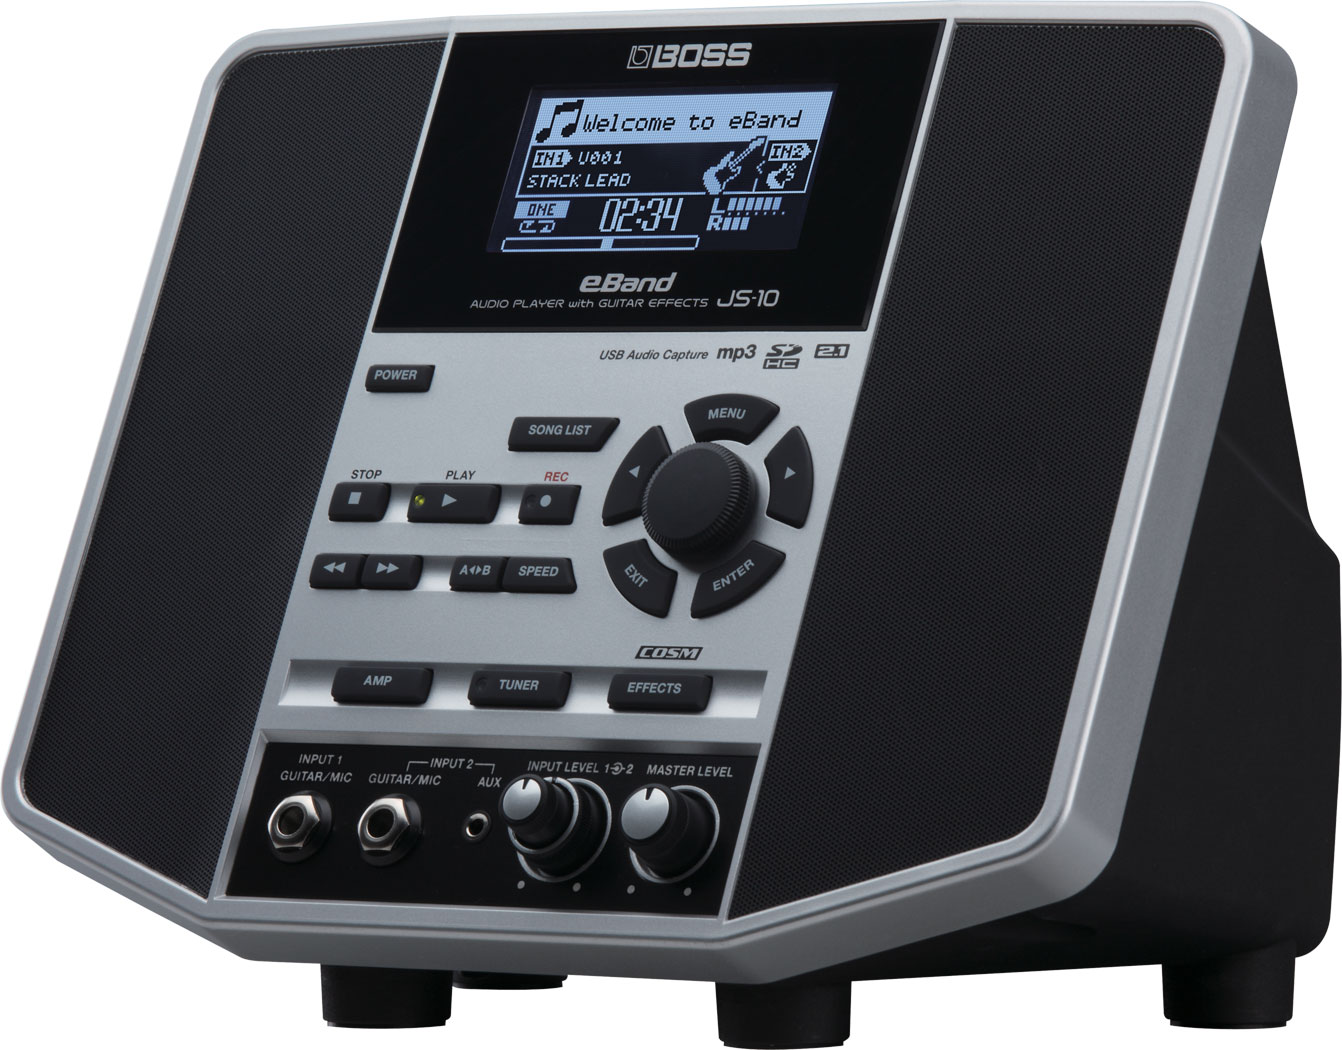 BOSS - eBand JS-10 | Audio Player with Guitar Effects